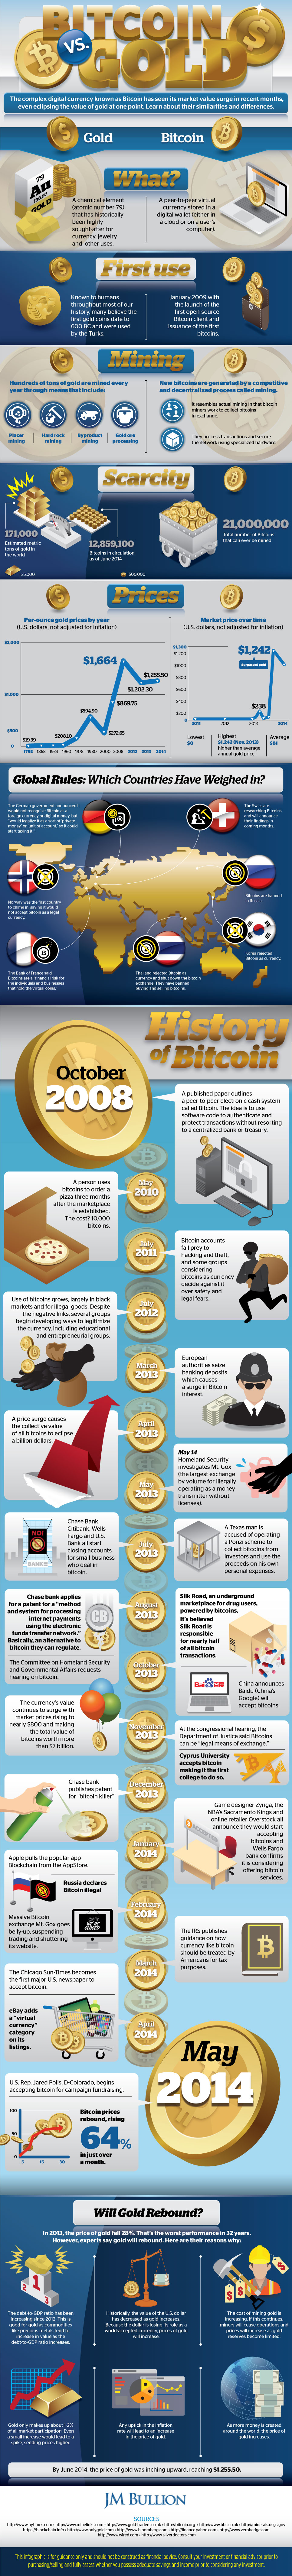 bitcoin-vs-gold-infographic